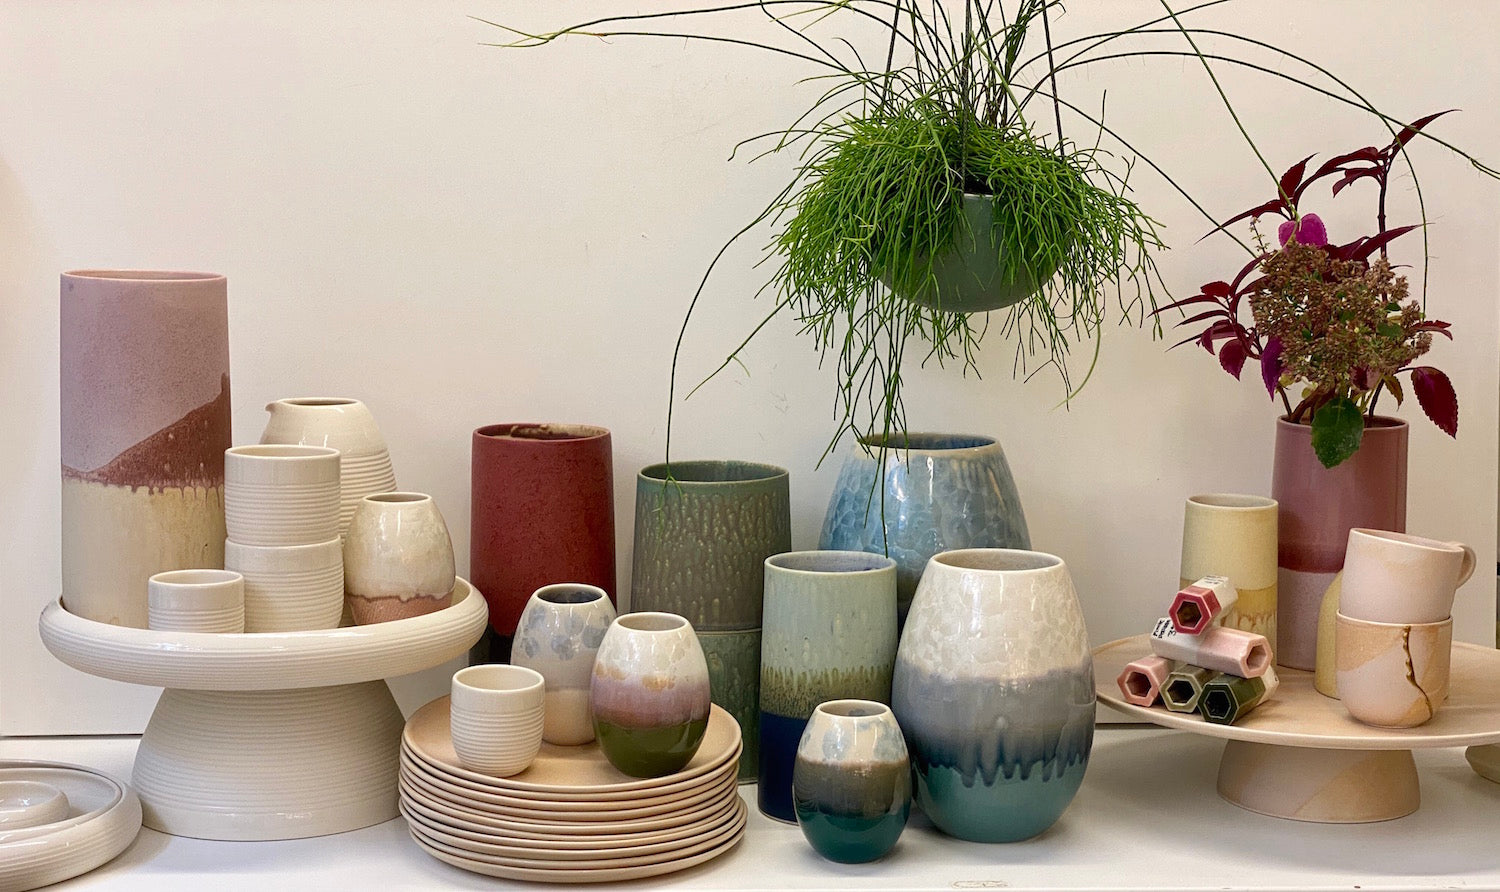 Selection of this year's stock sales items. WAUW design will hold stock sales on 6 and 7 November 2020.